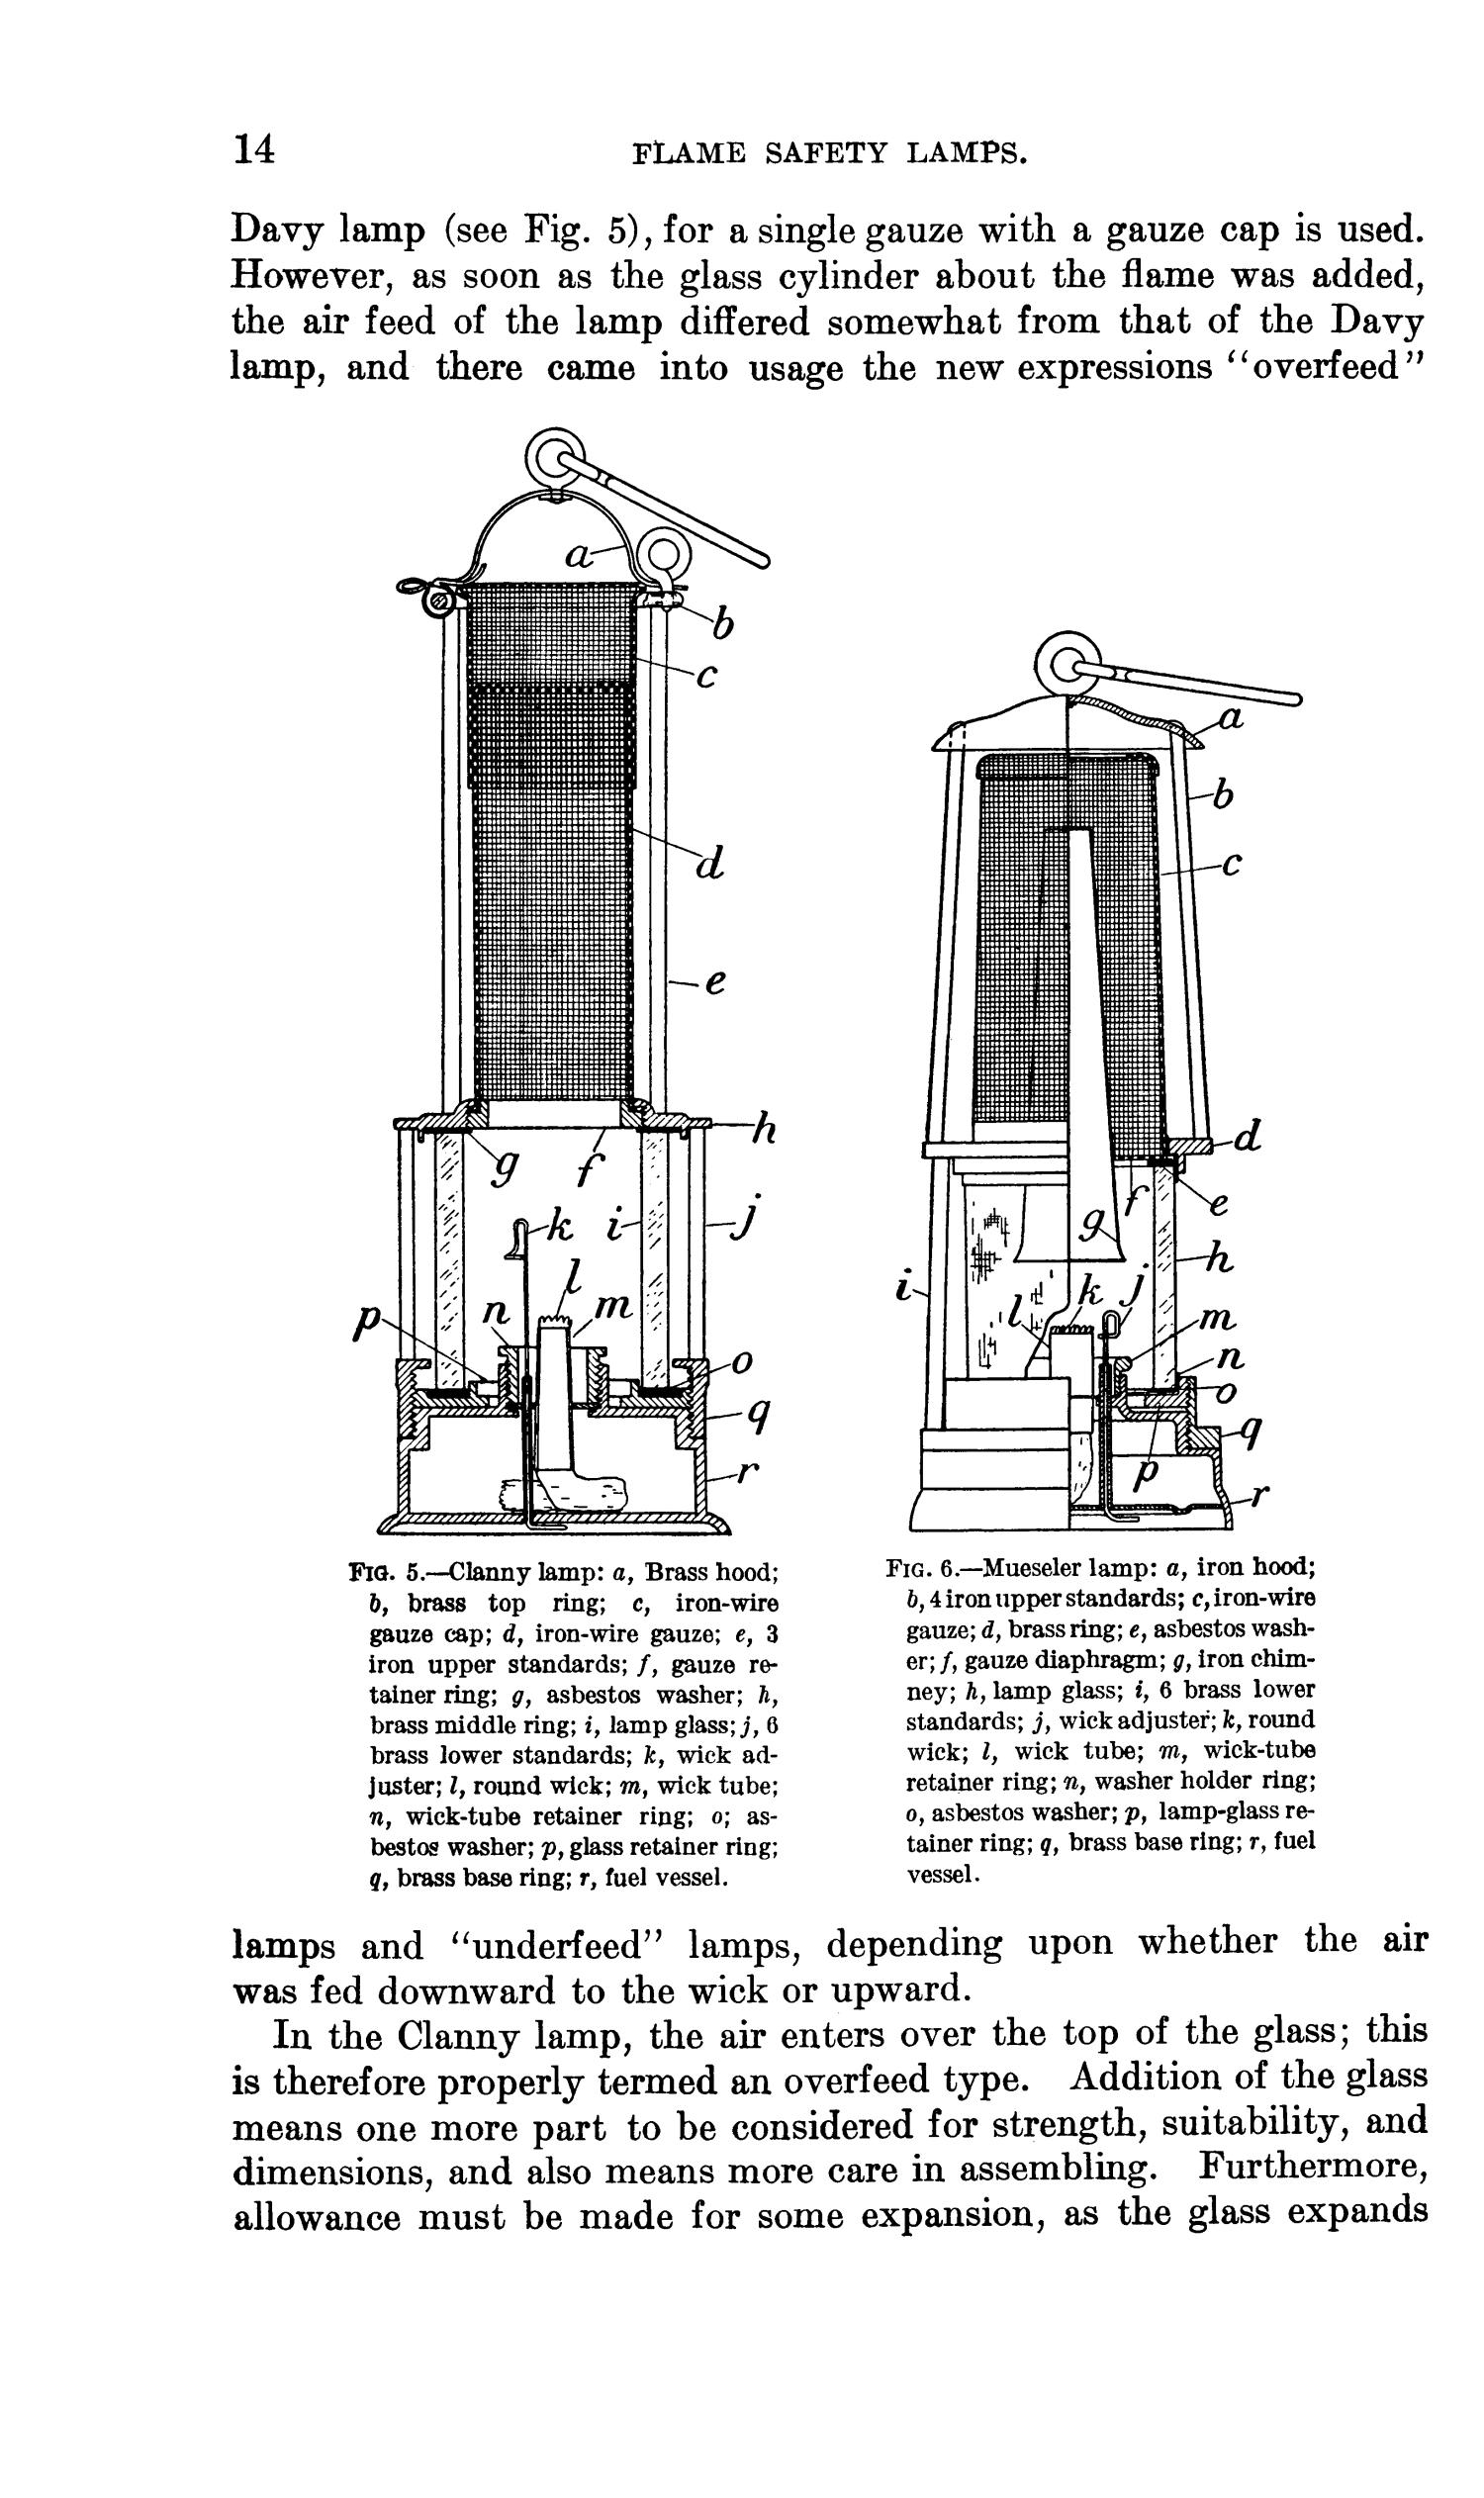 Flame Safety Lamps - Page 14 - Digital Library